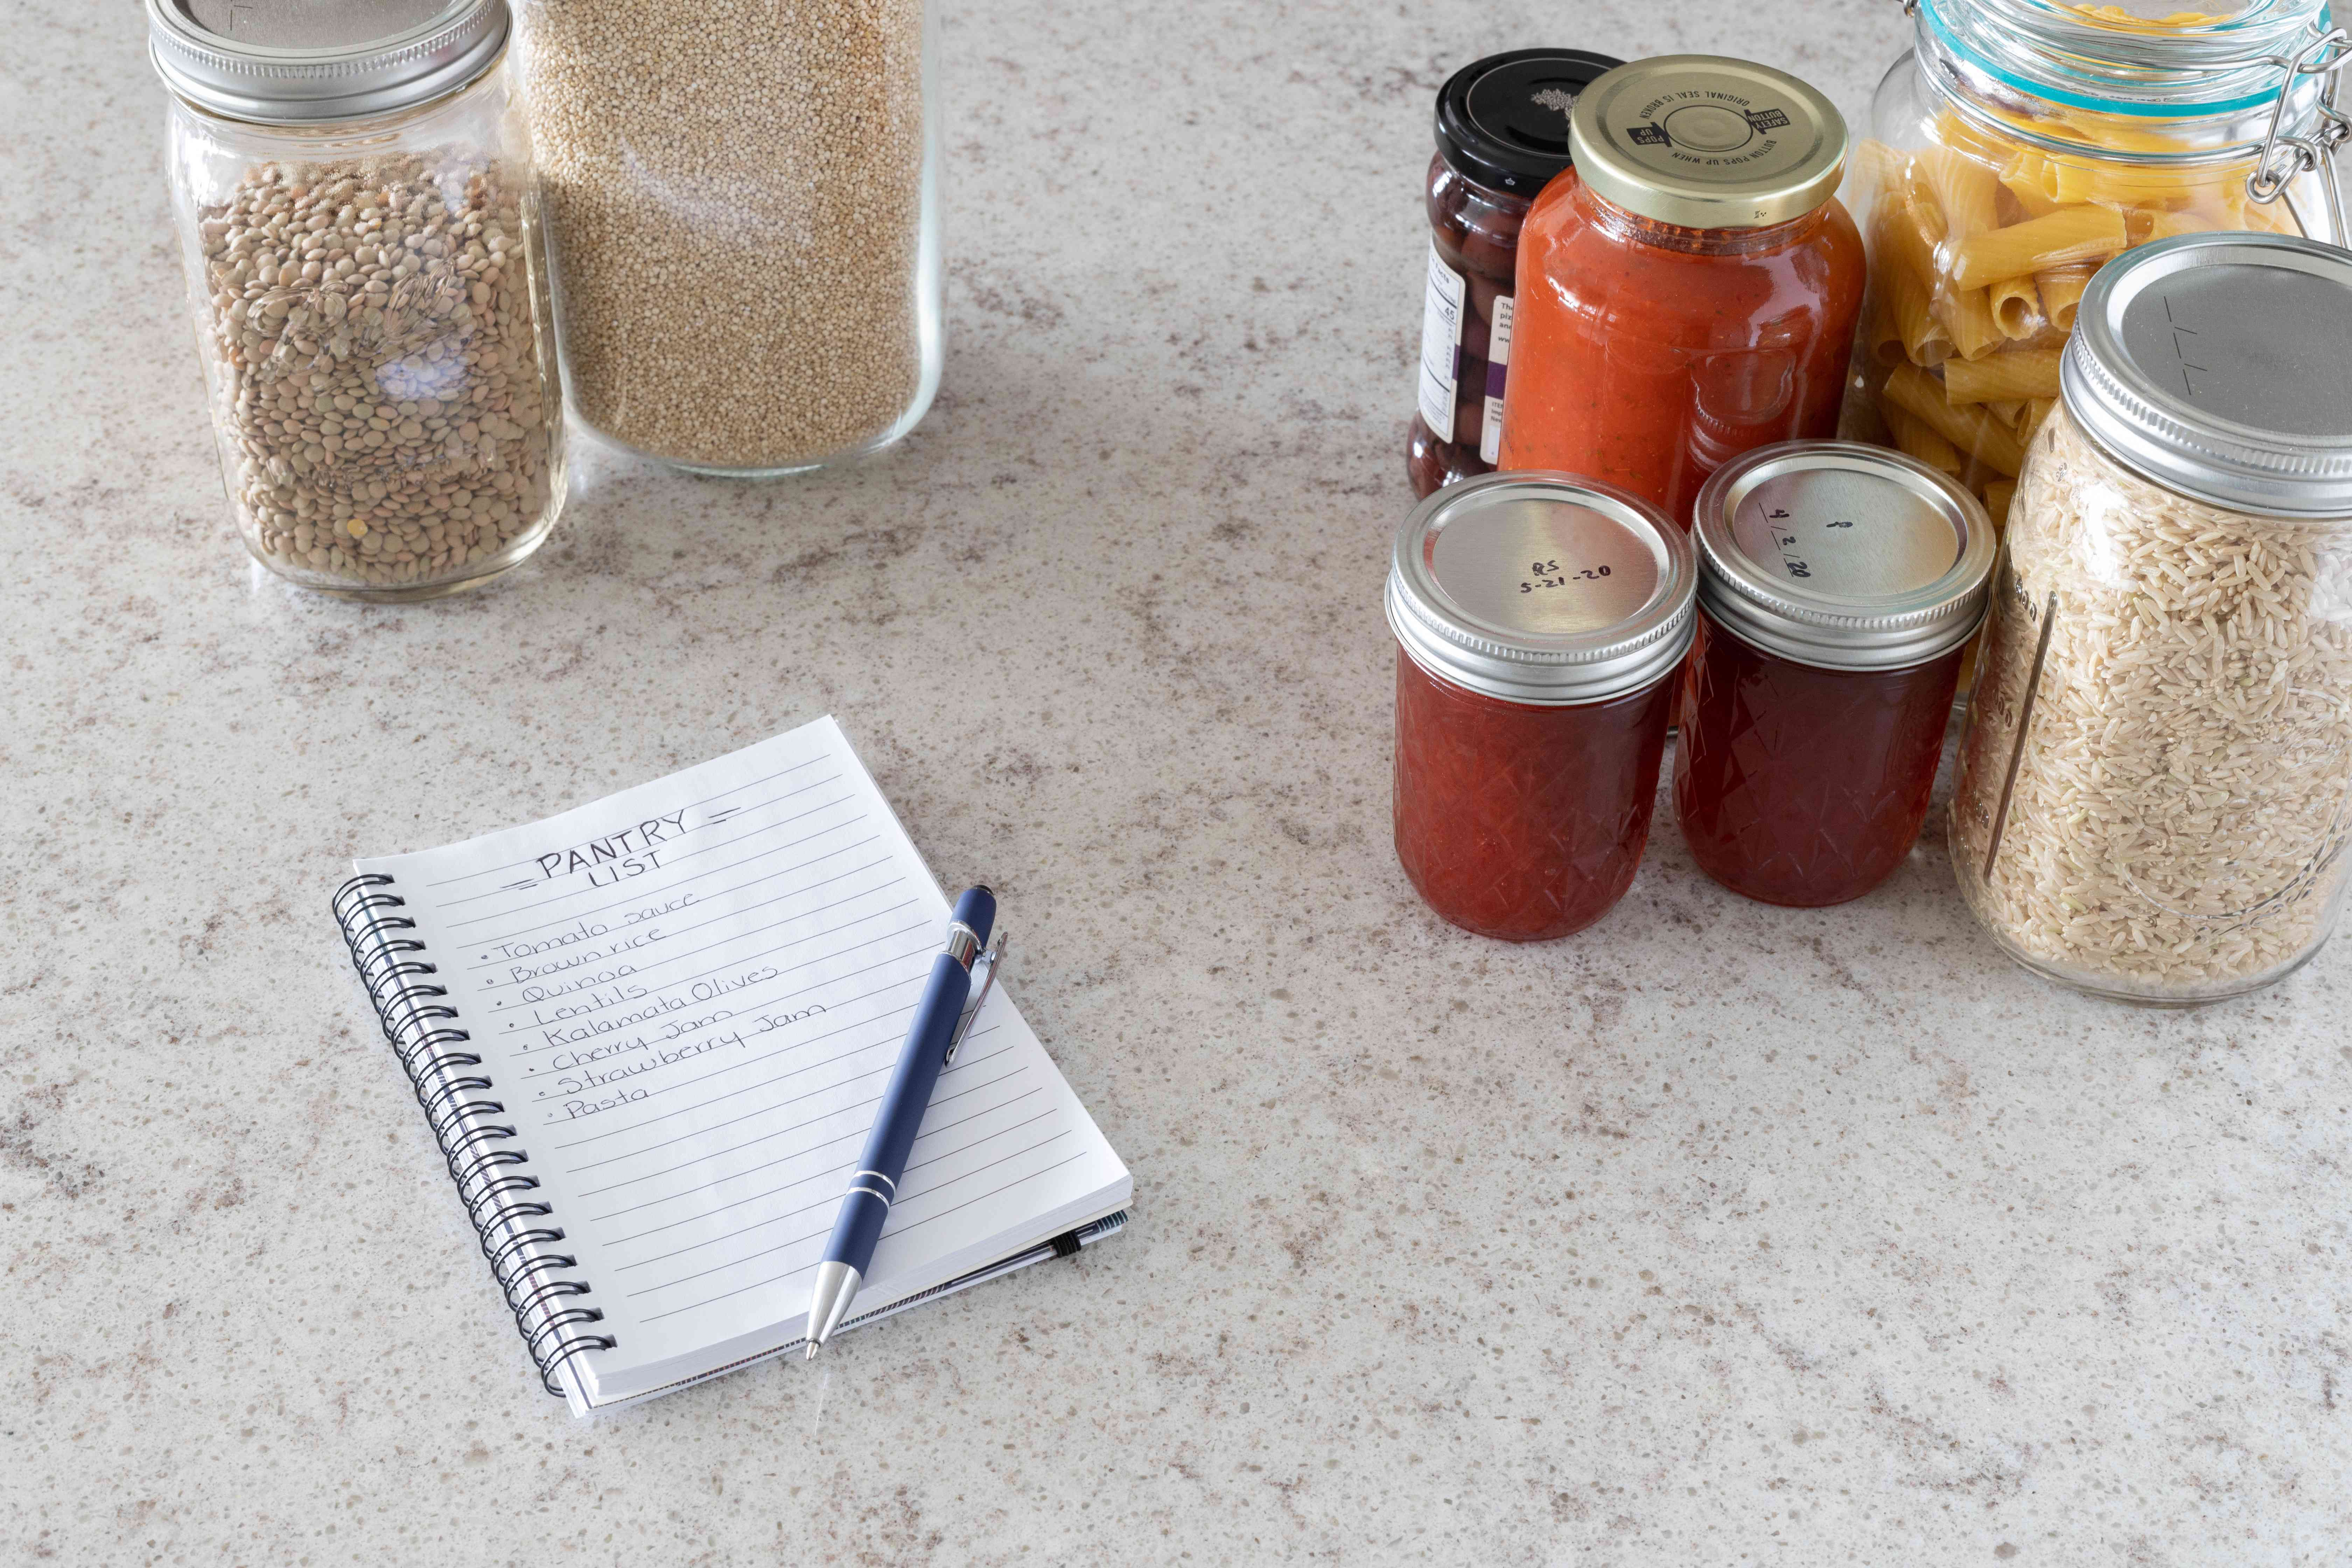 Paper pad with list and pen on top next to kitchen items on marbled countertop